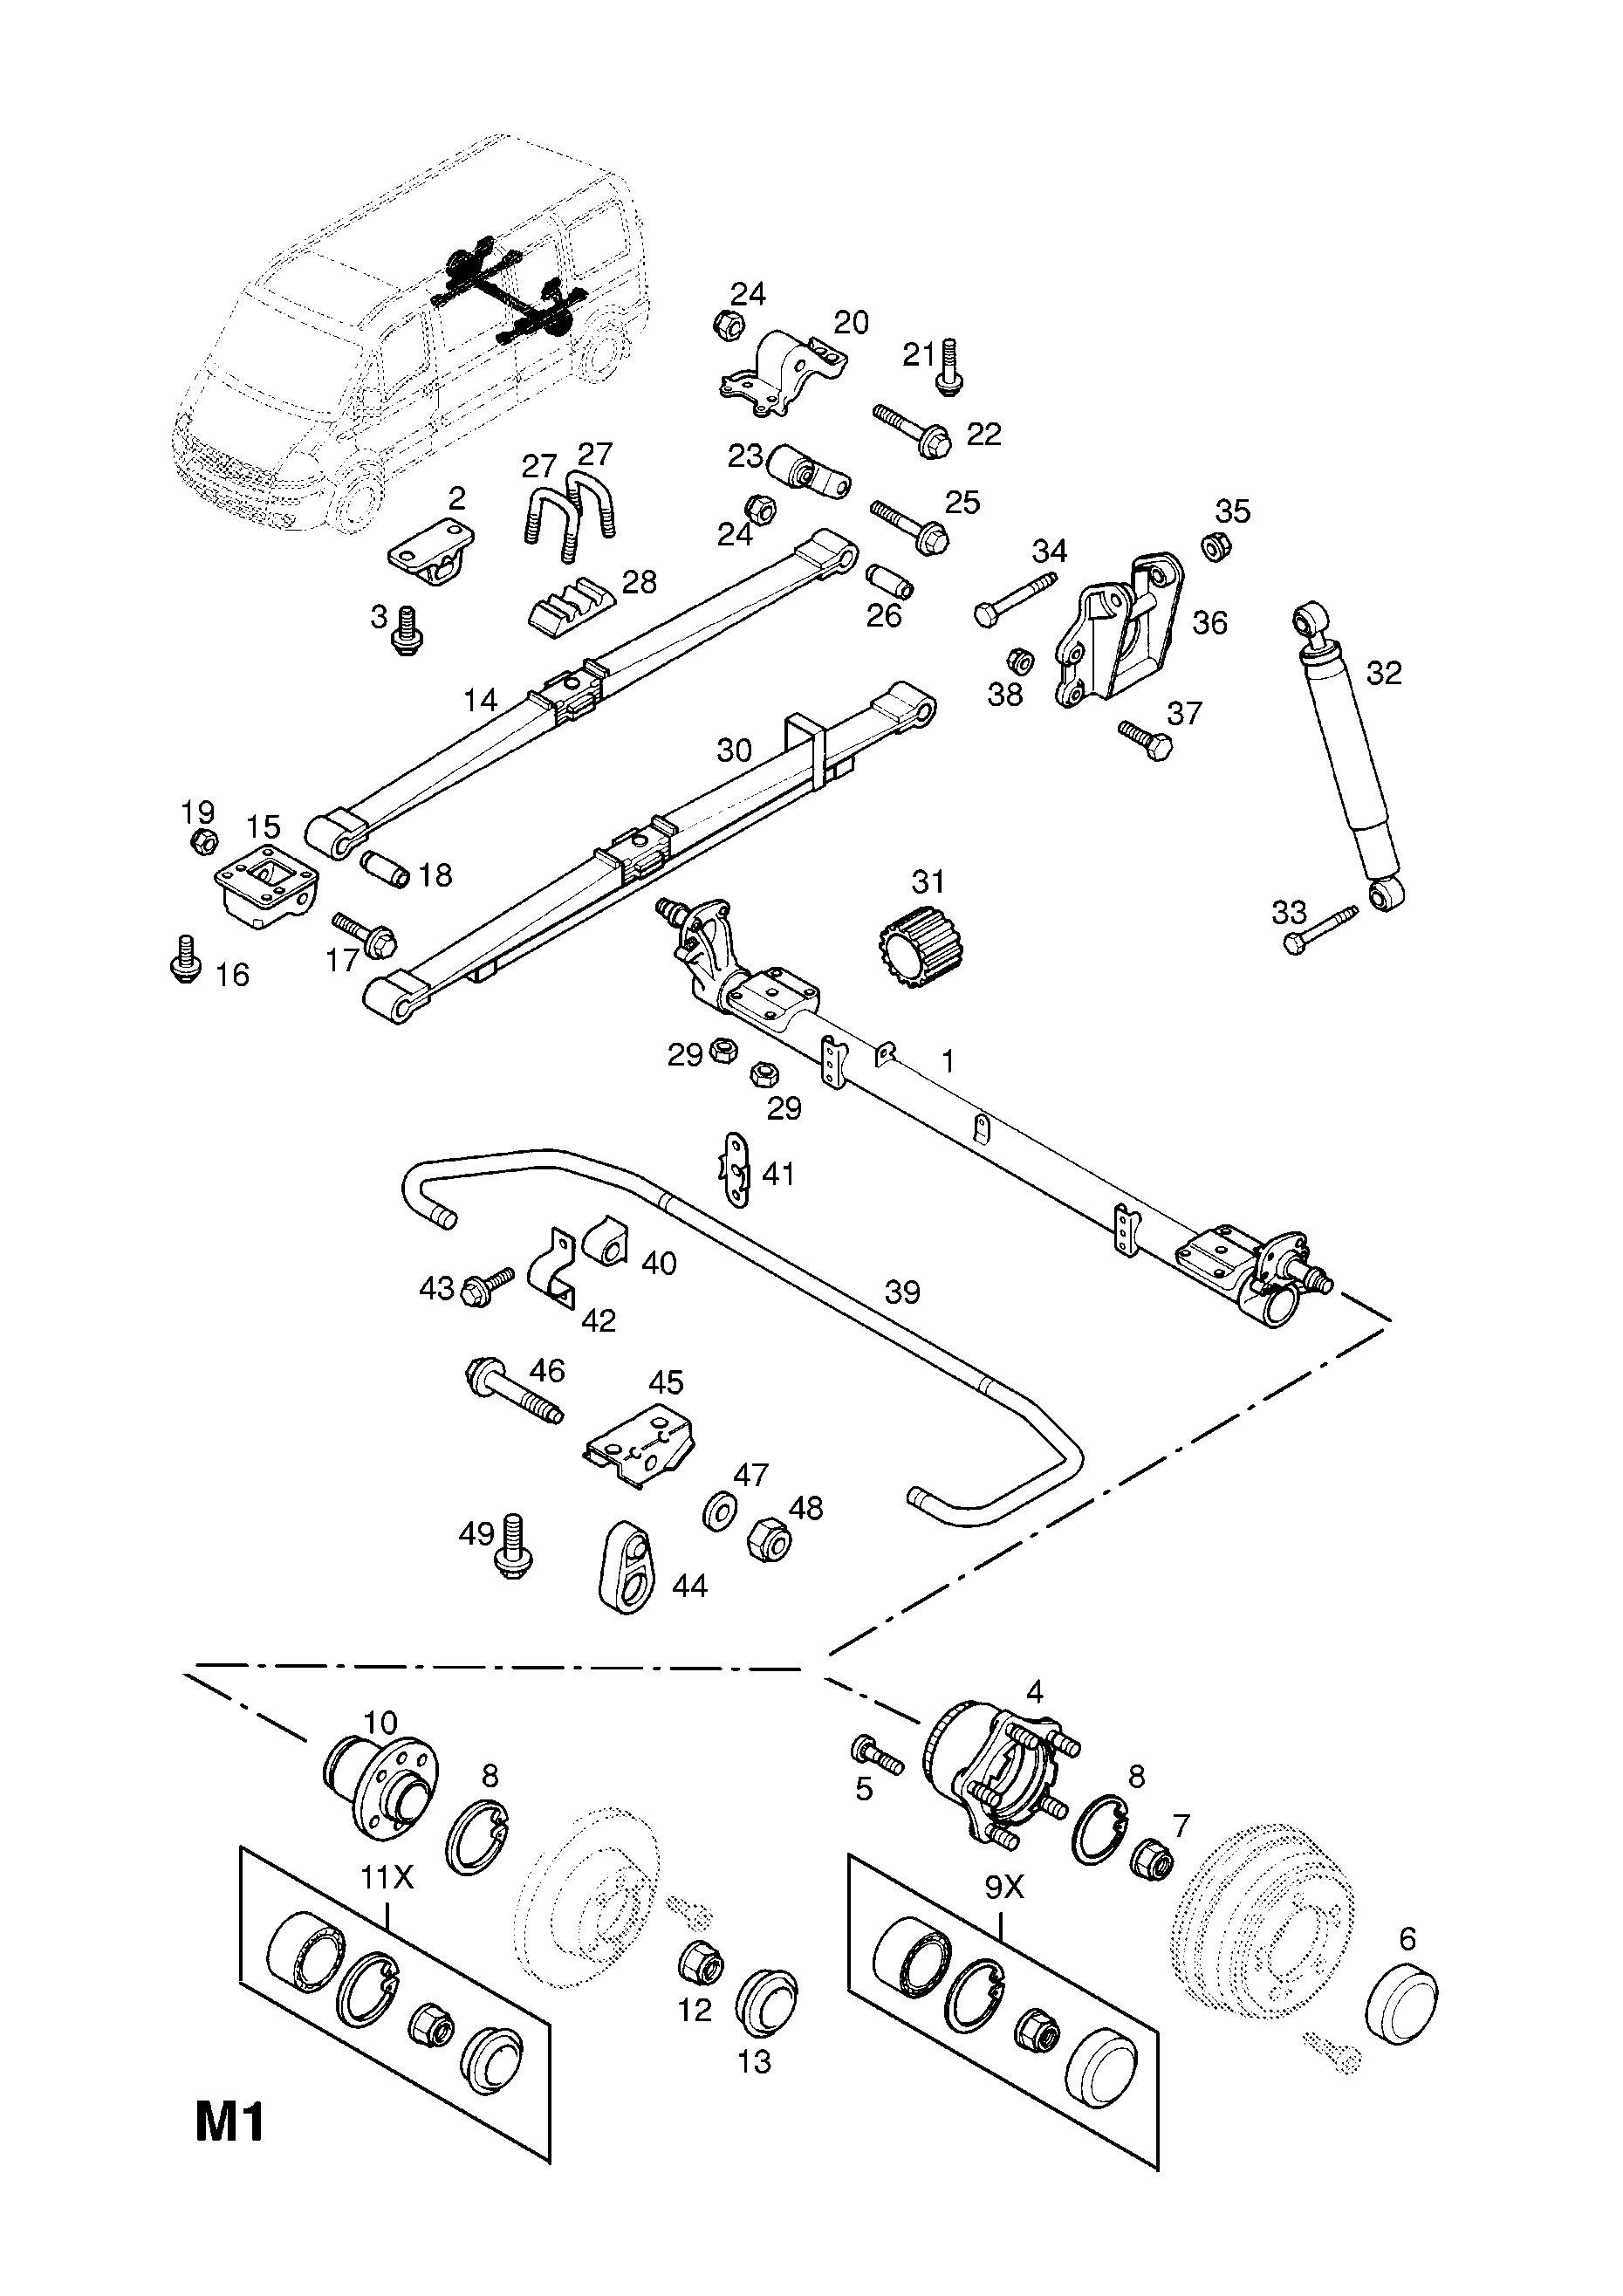 Leaf Spring Parts Diagram Opel Movano A 1999 2010 M Rear Axle and Suspension 1 Leaf Of Leaf Spring Parts Diagram